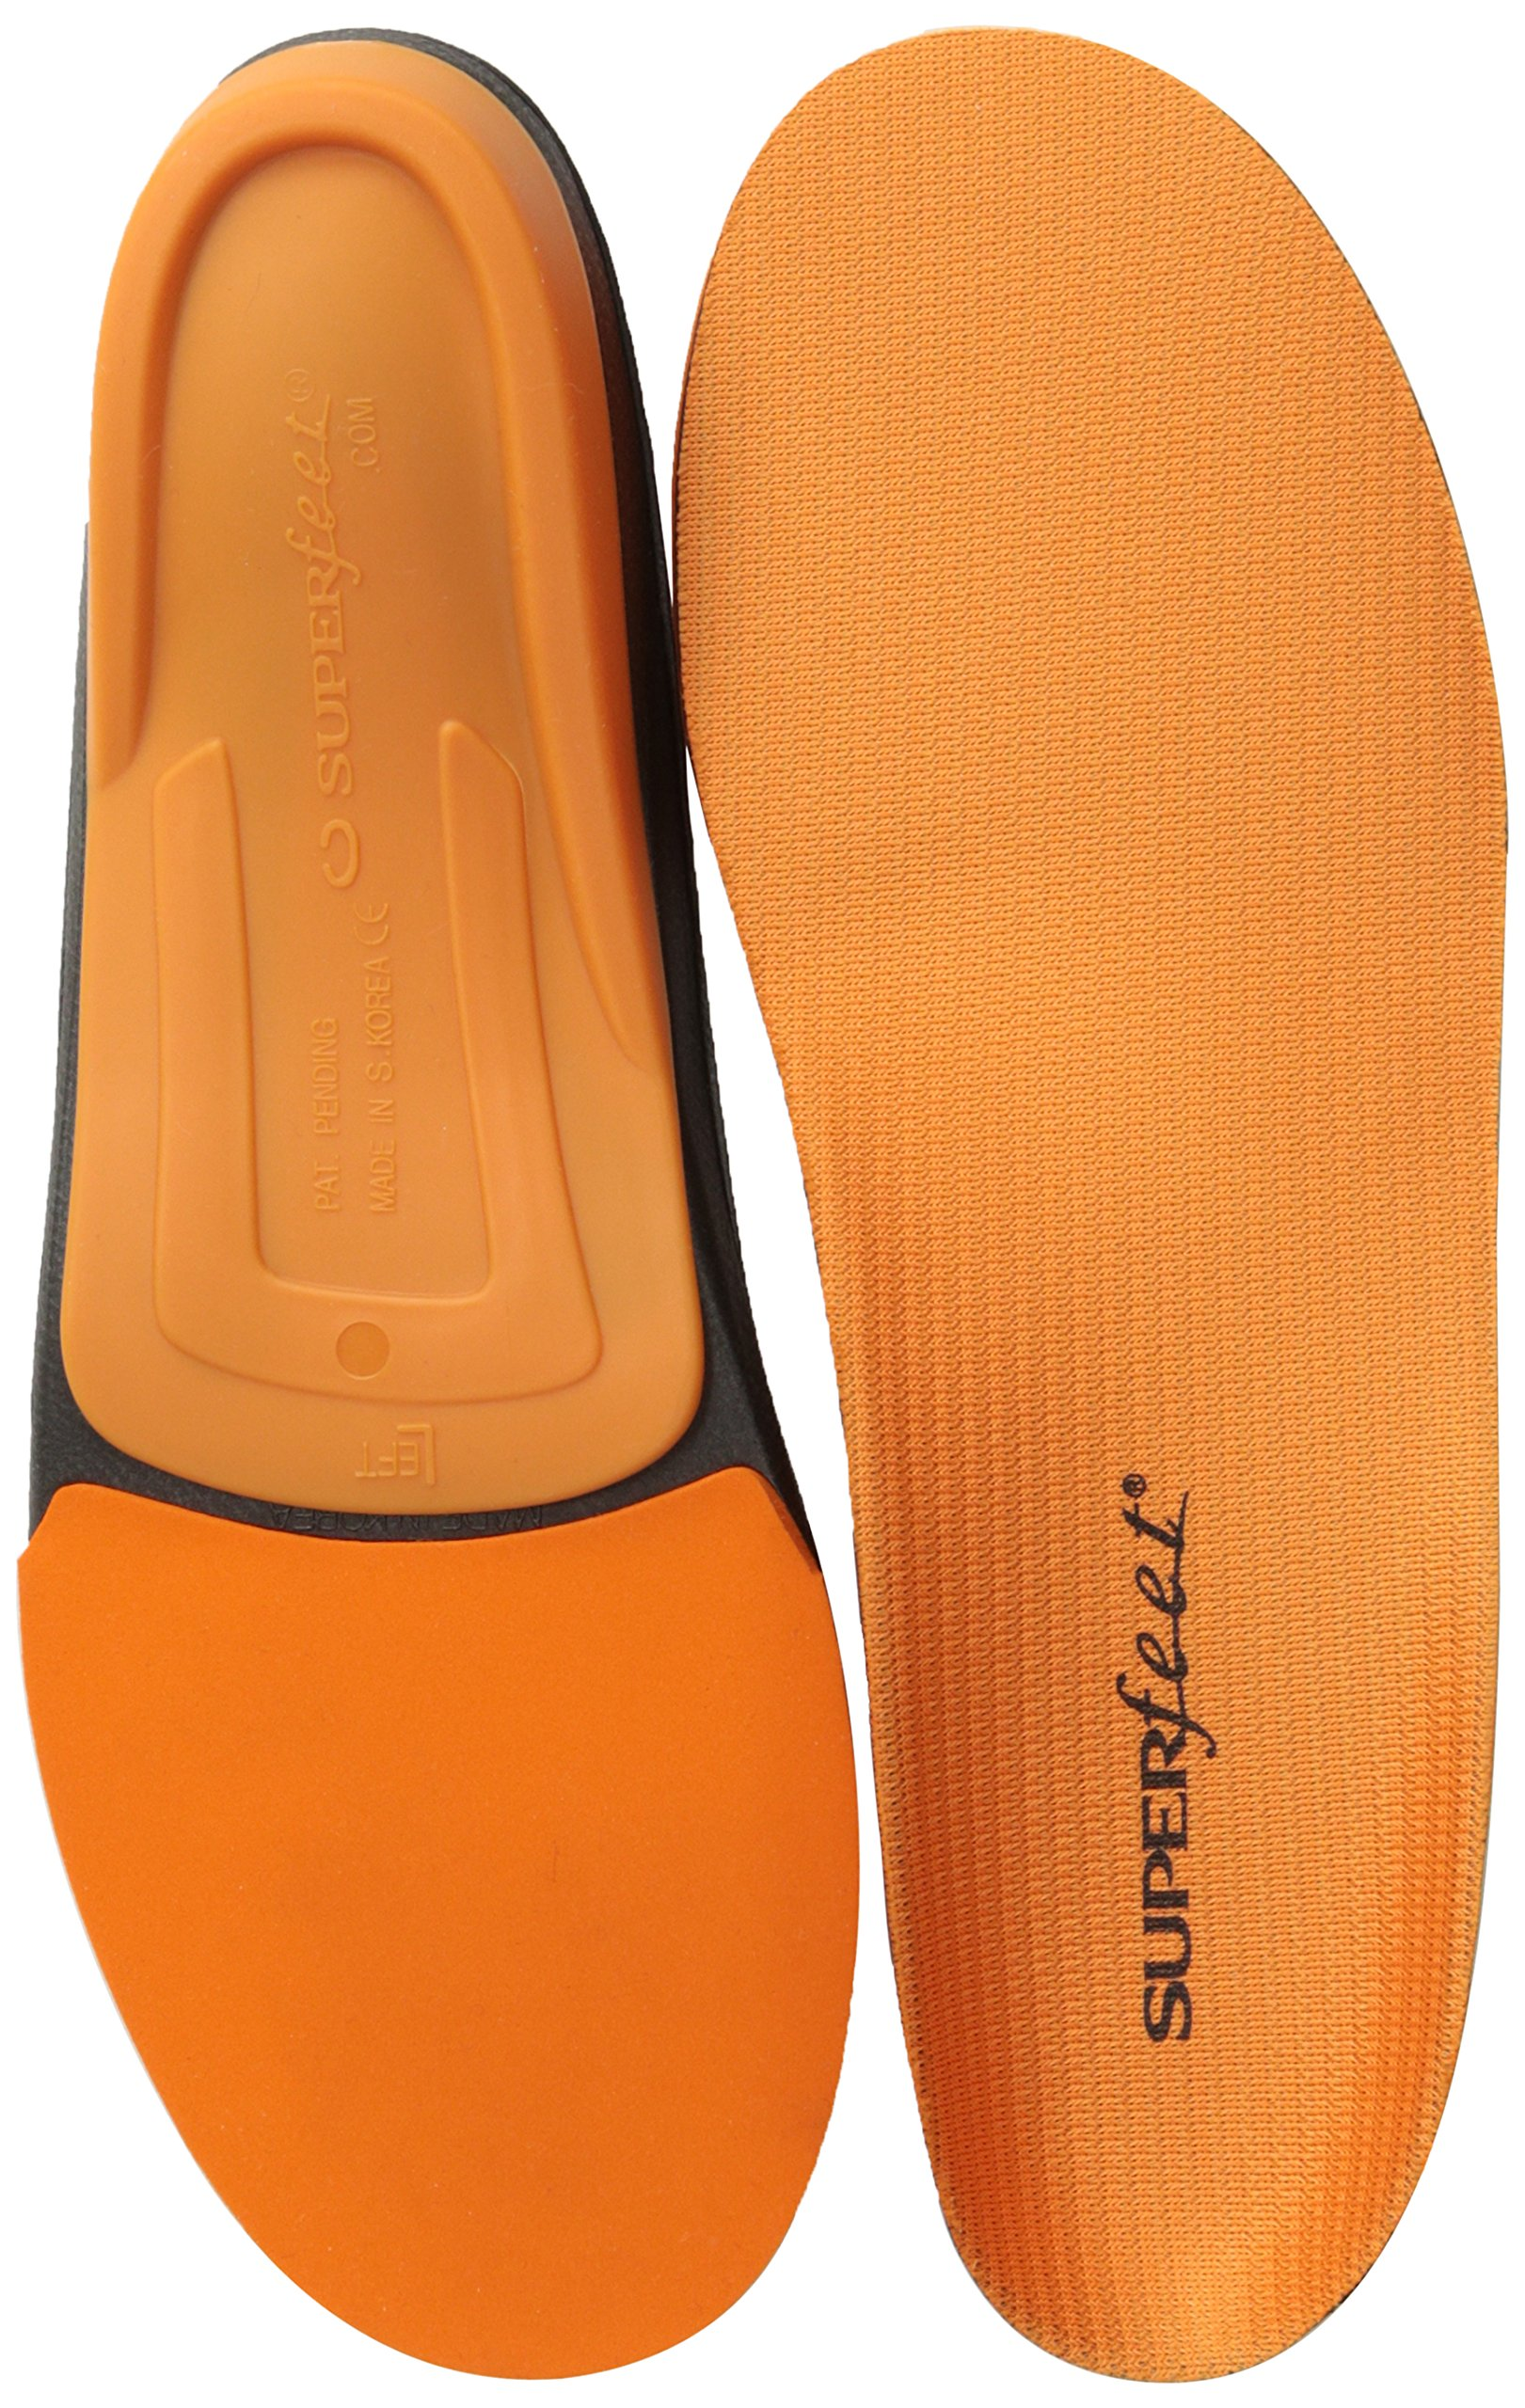 Superfeet Men's Orange Premium Insoles,Orange,D: 7.5 - 9 US Mens by Superfeet